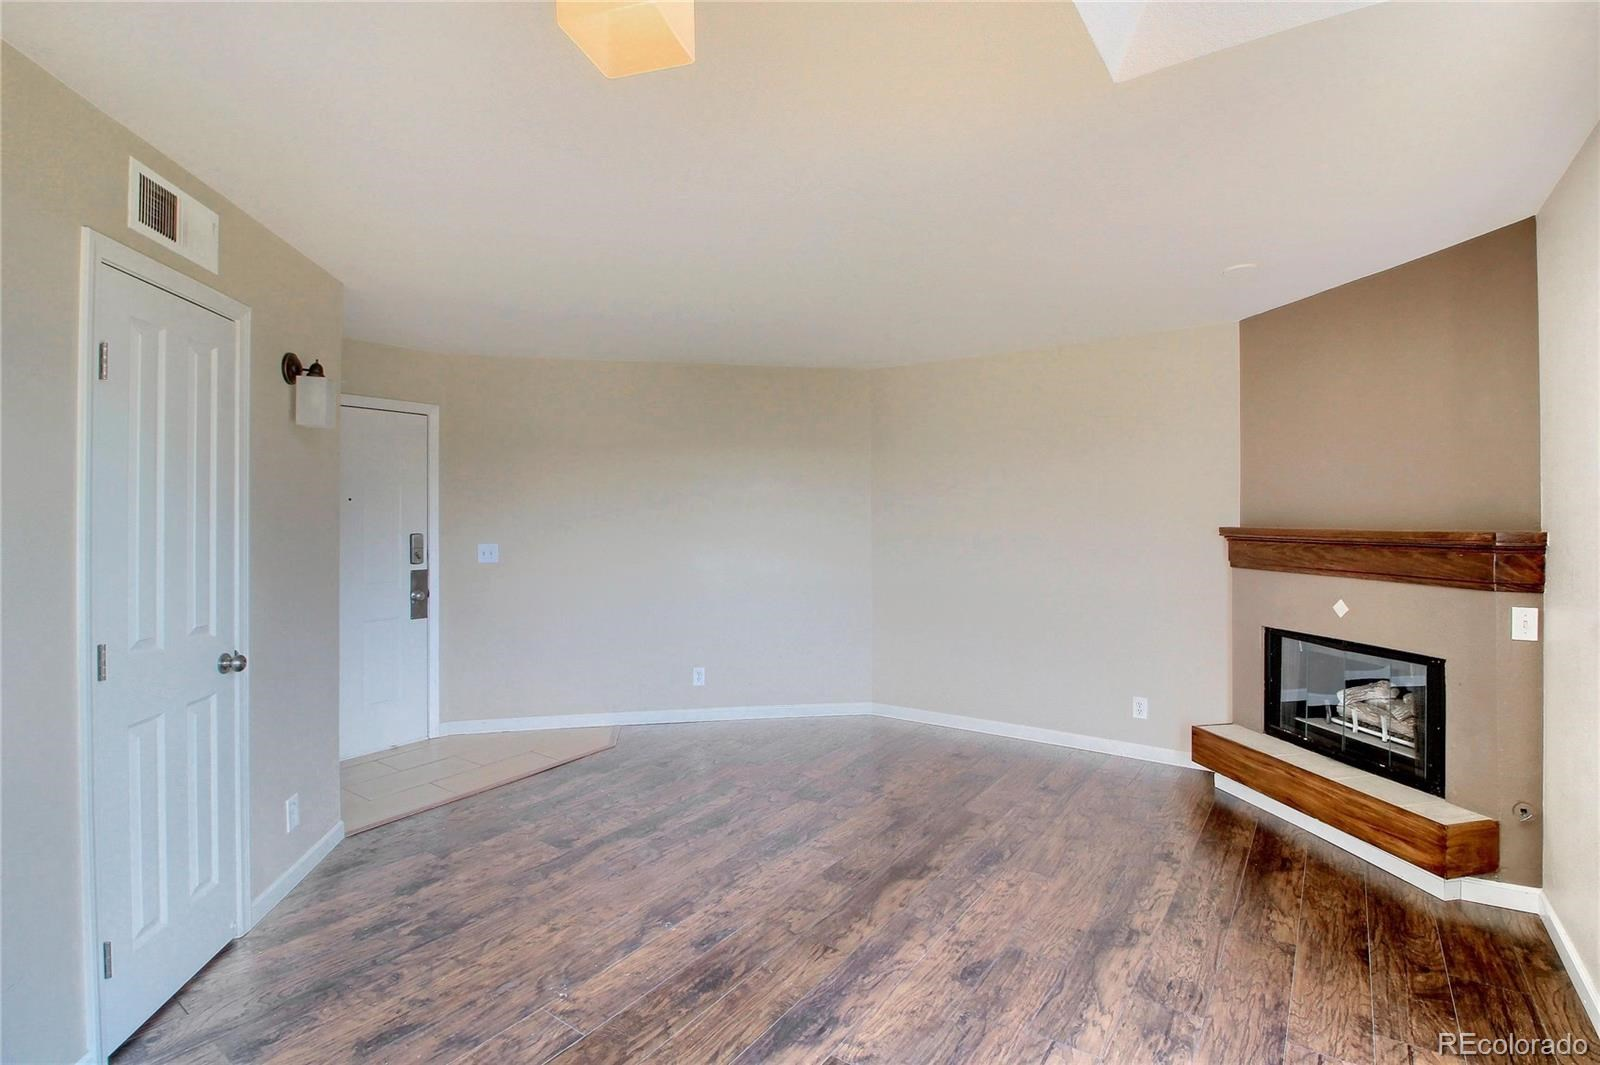 MLS# 5763768 - 15 - 6380 S Boston Street #303, Greenwood Village, CO 80111